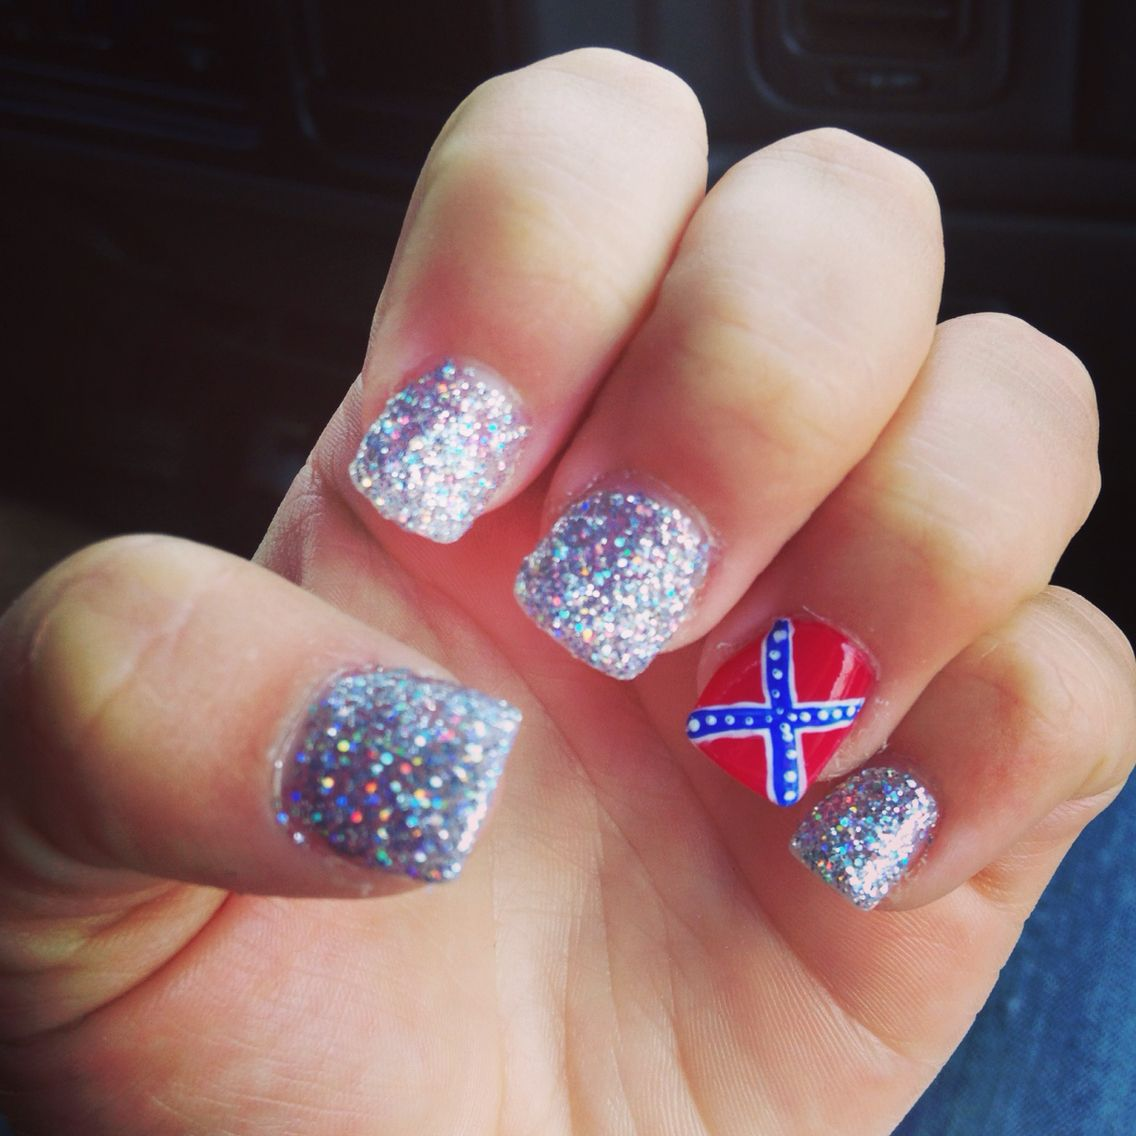 Confederate flag nails❤ - Confederate Flag Nails❤ Nails Pinterest Flag Nails,  Country - Country Nail Designs Graham Reid